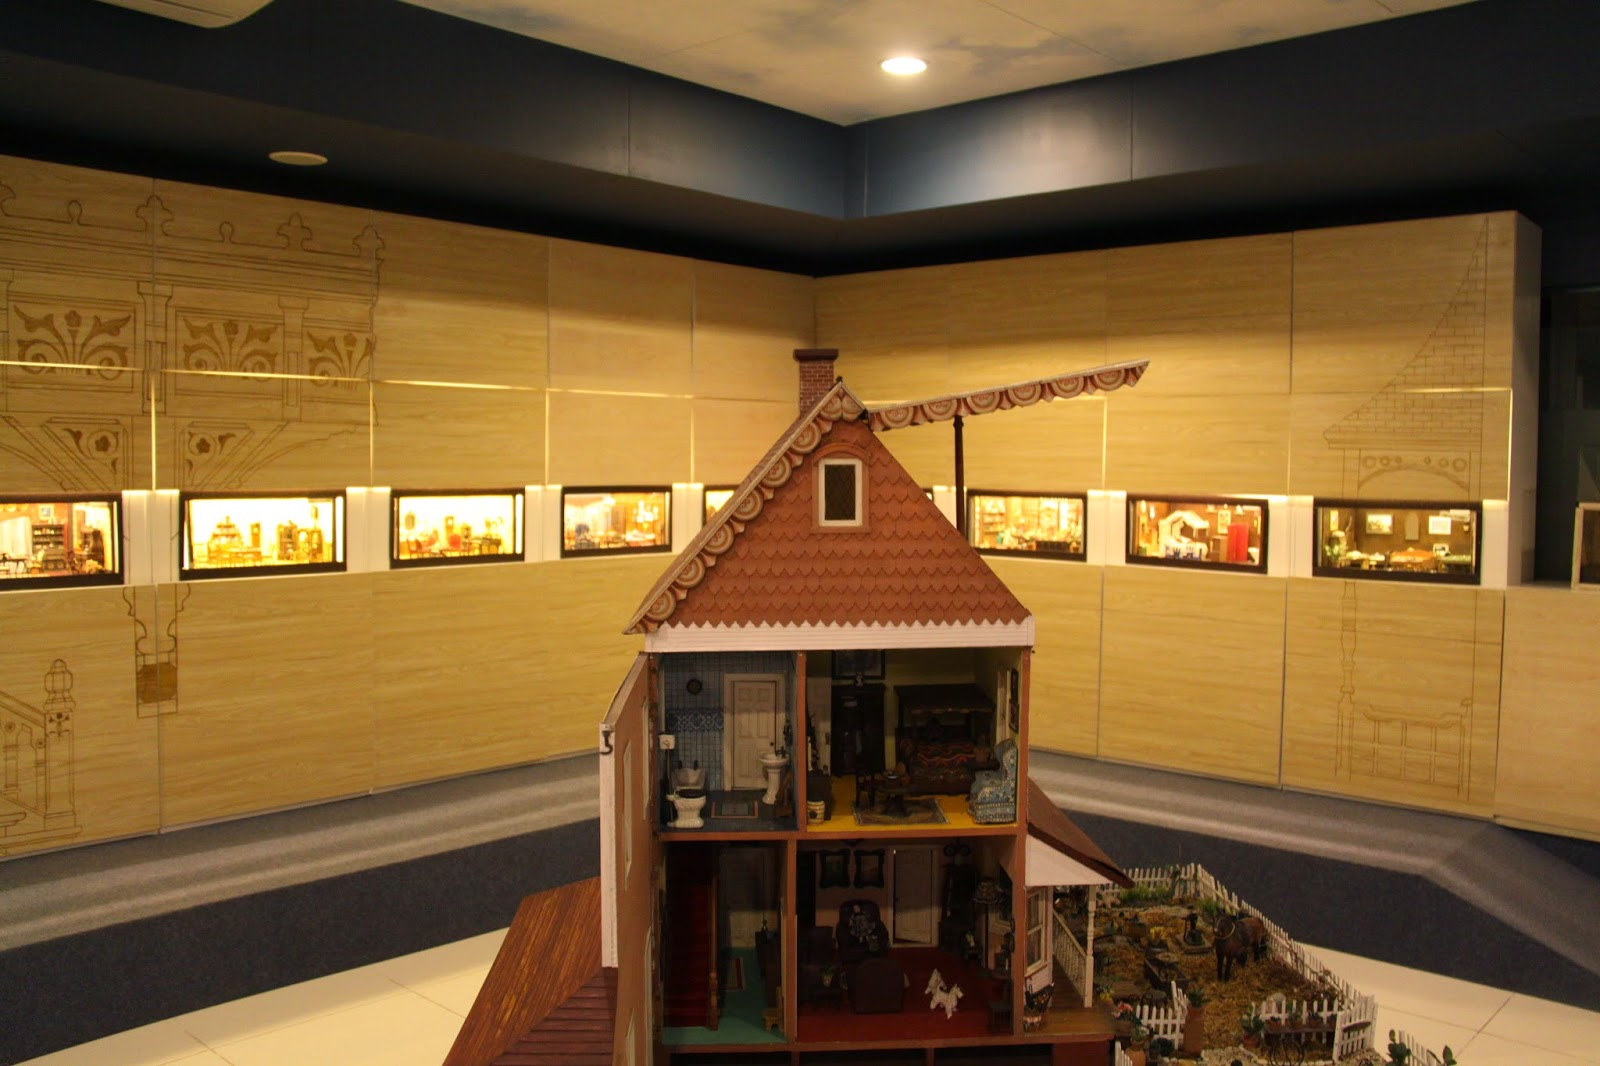 Doll house 3: Miniature Museum